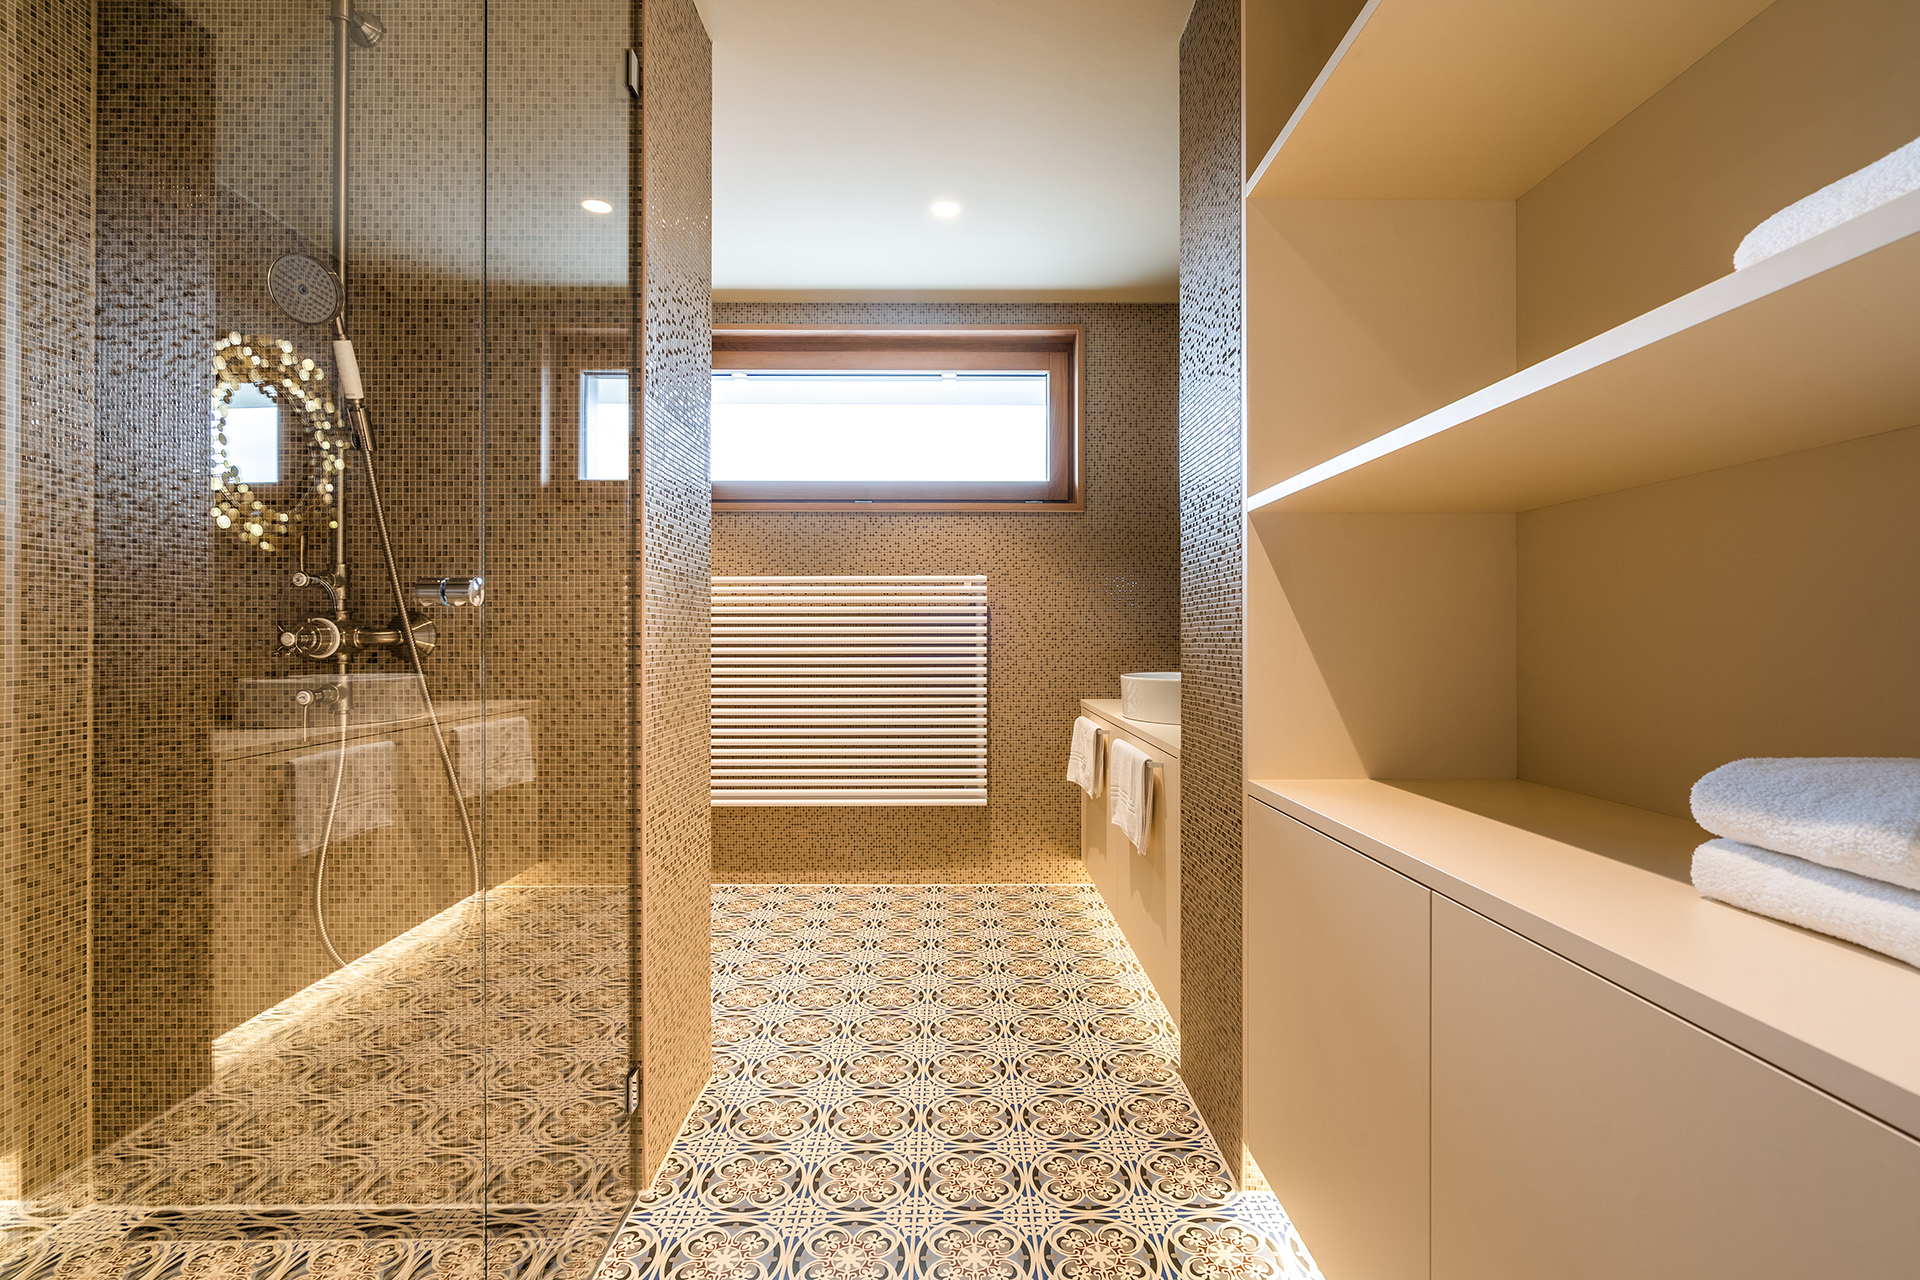 The colour and design concept of the Marrakesh Suite continues seamlessly in the bathroom. The TECEdrainline shower channel with the drop-in design grate goes well with this.